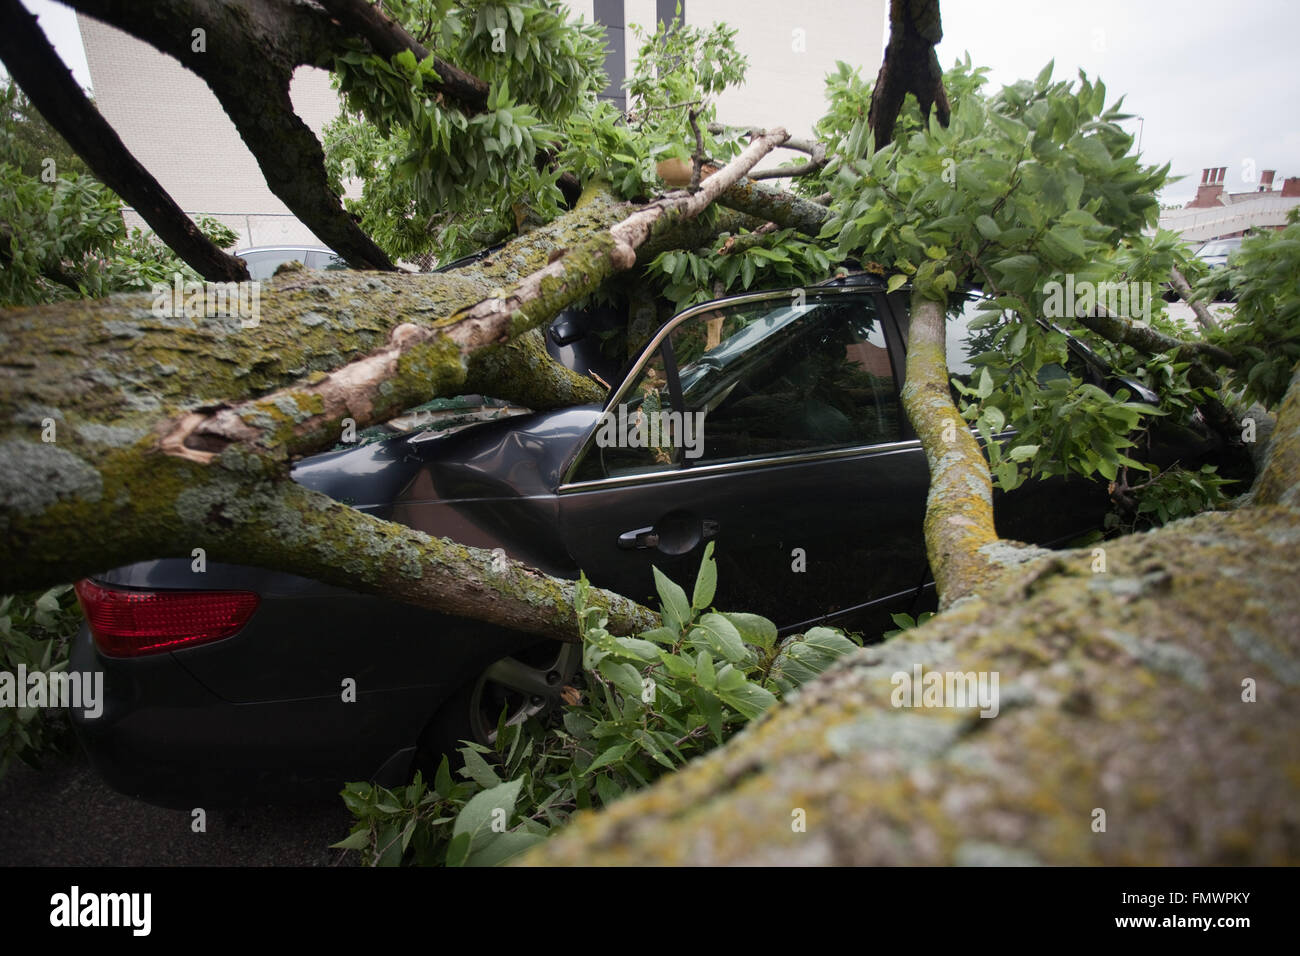 Smashed car from a large fallen tree in Kansas City, Missouri. Stock Photo